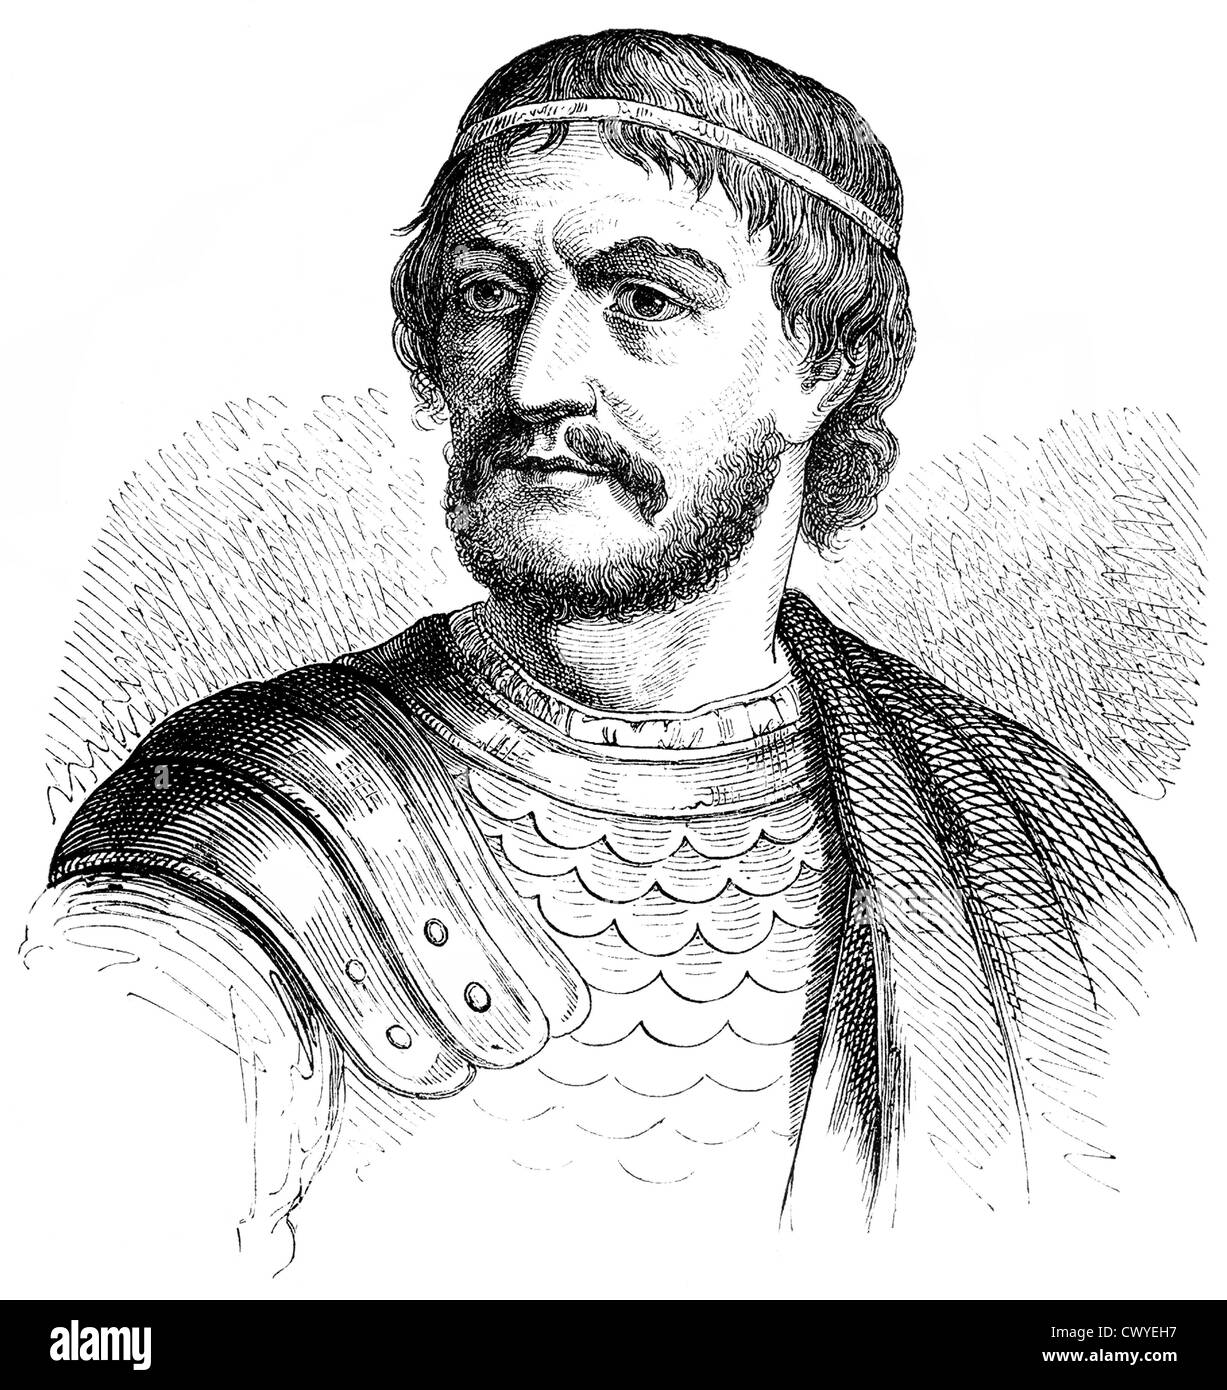 Charles Martel, Carolus Martellus, circa 688-741, Frankish military and political leader from the Arnulfings and - Stock Image